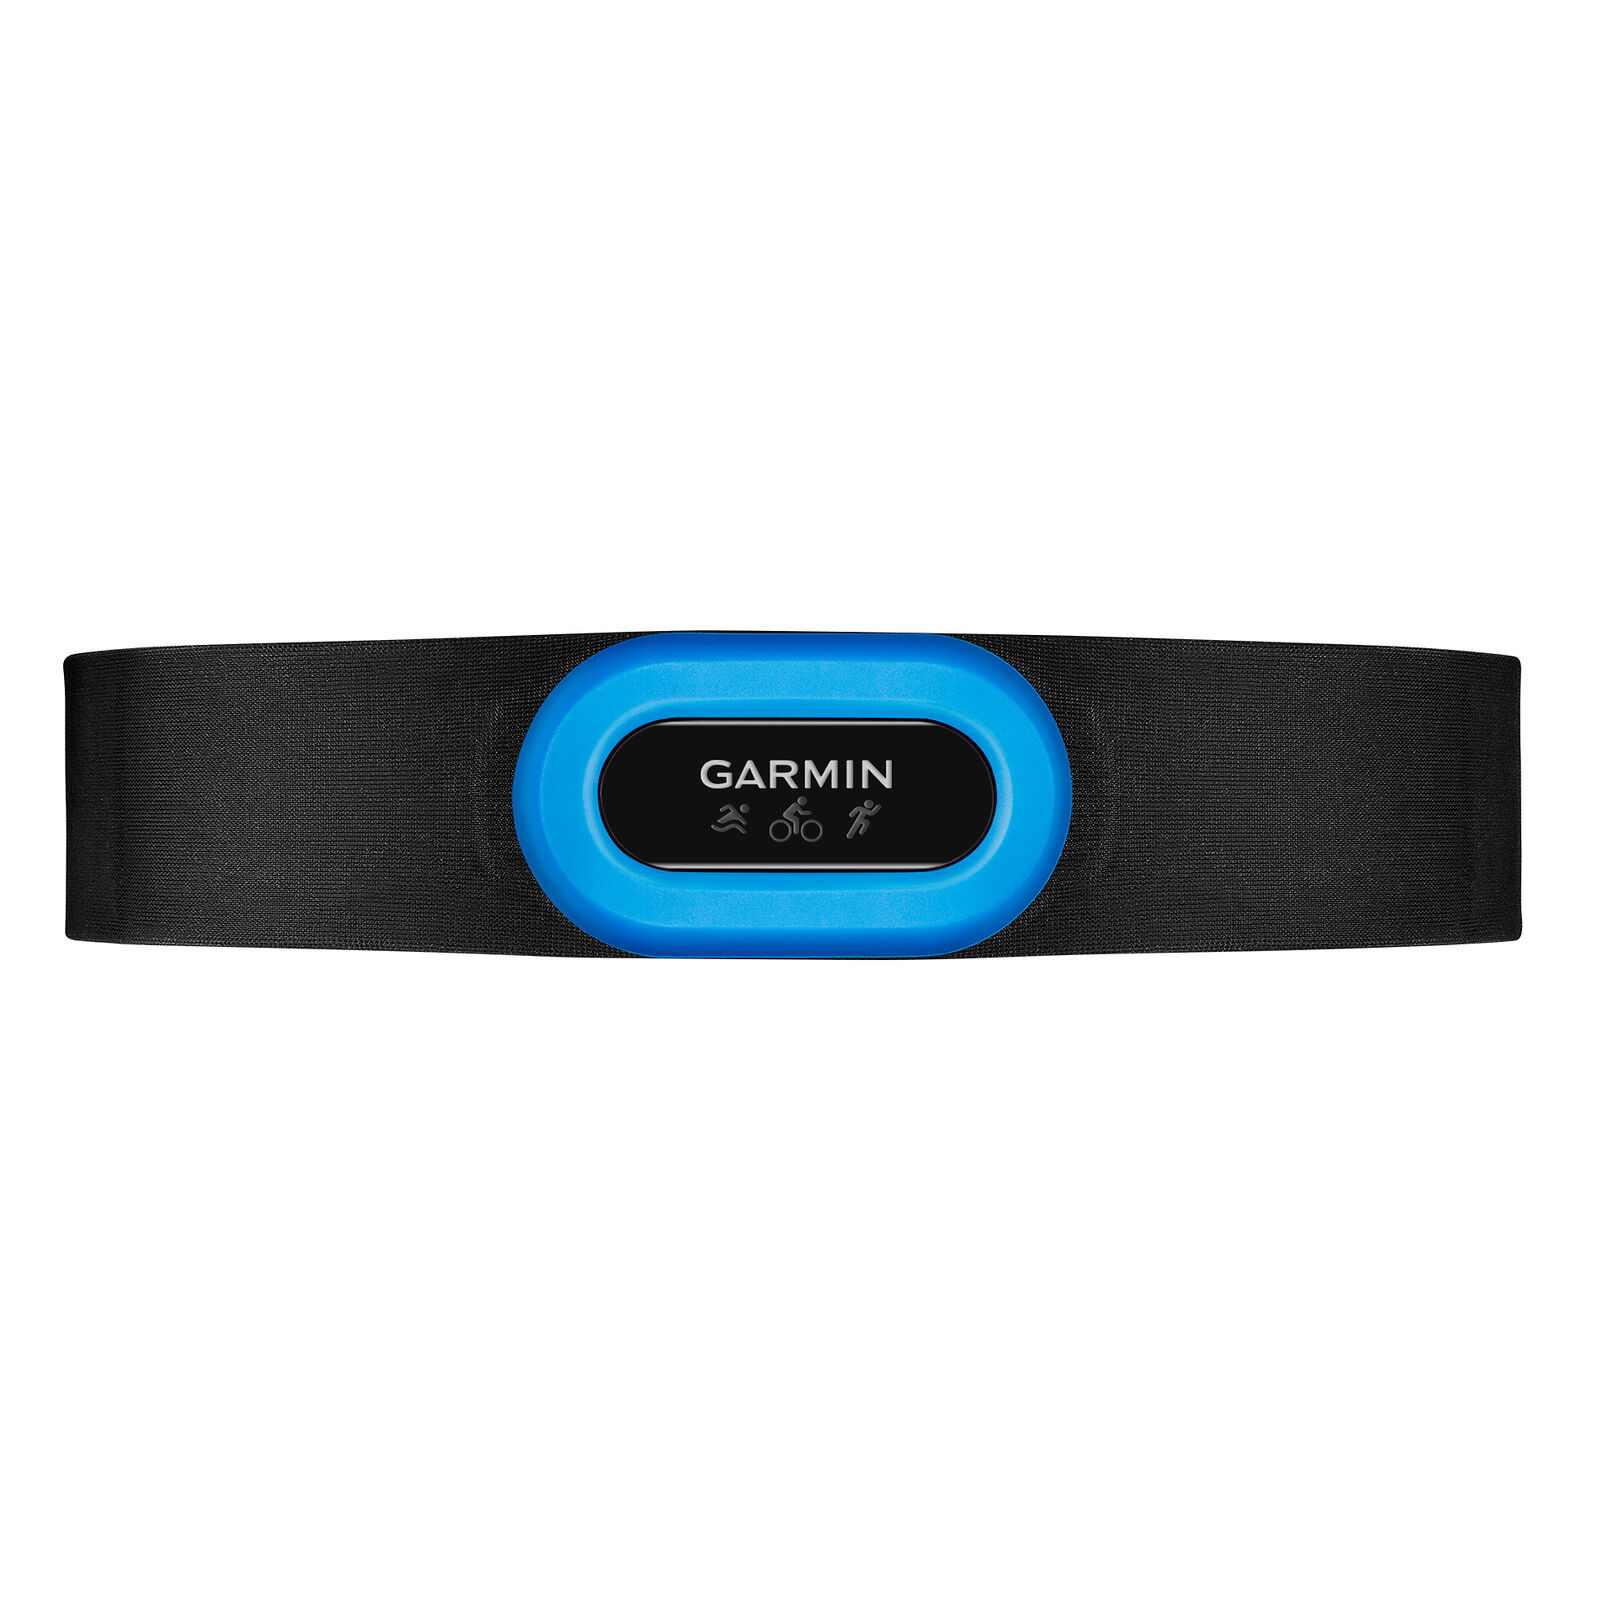 Garmin HRM Compatible 3 fenix with Strap Monitor Rate Heart